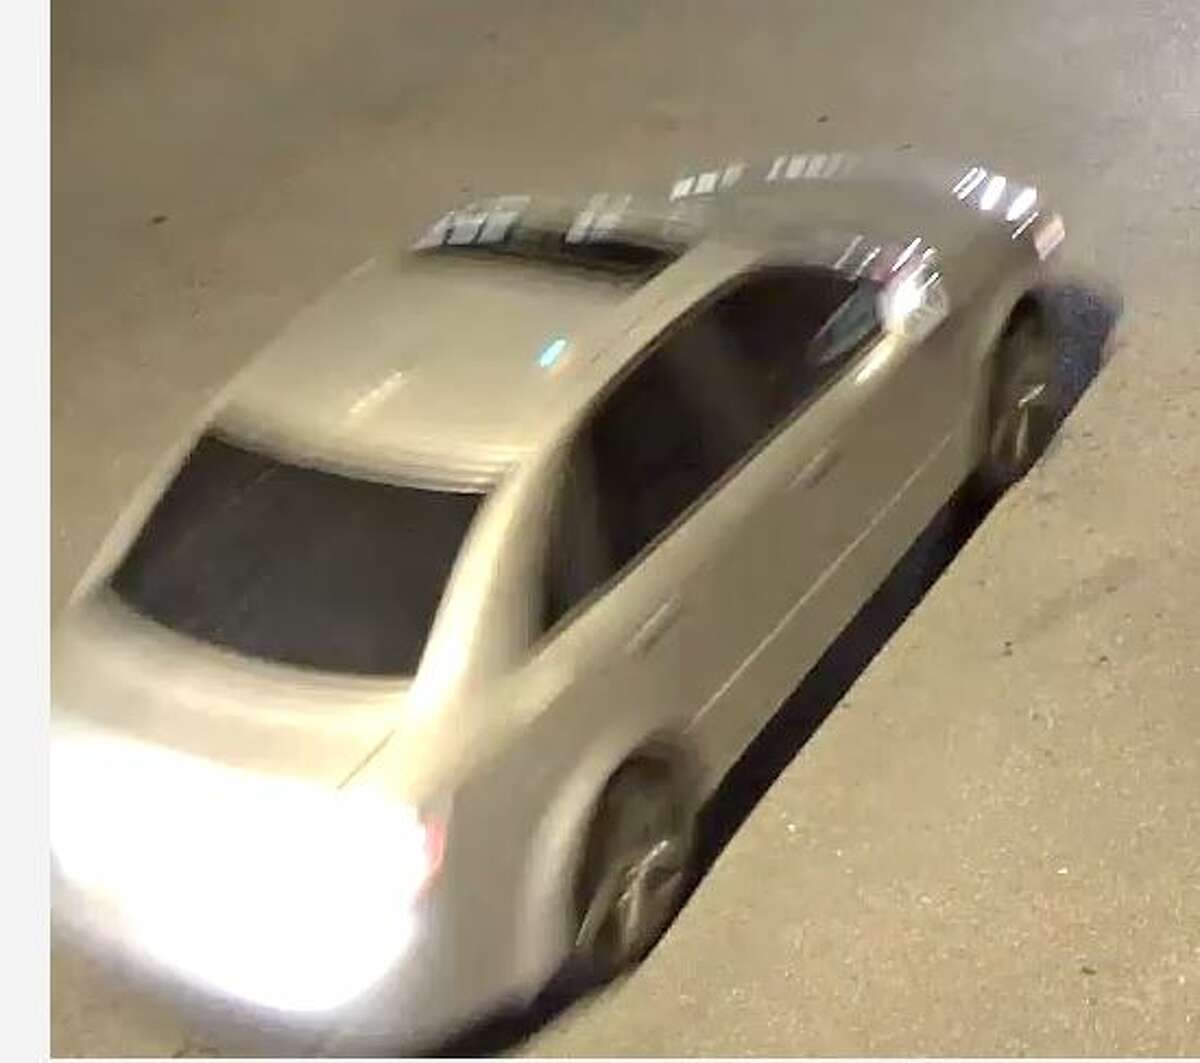 Troy police are seeking information about this car seen in the vicinity of Sixth Avenue and Swift Street at about 10:45 p.m. June 5, 2020 when Donnovan Clayton, 18, was killed by a stray bullet from a nearby shooting.